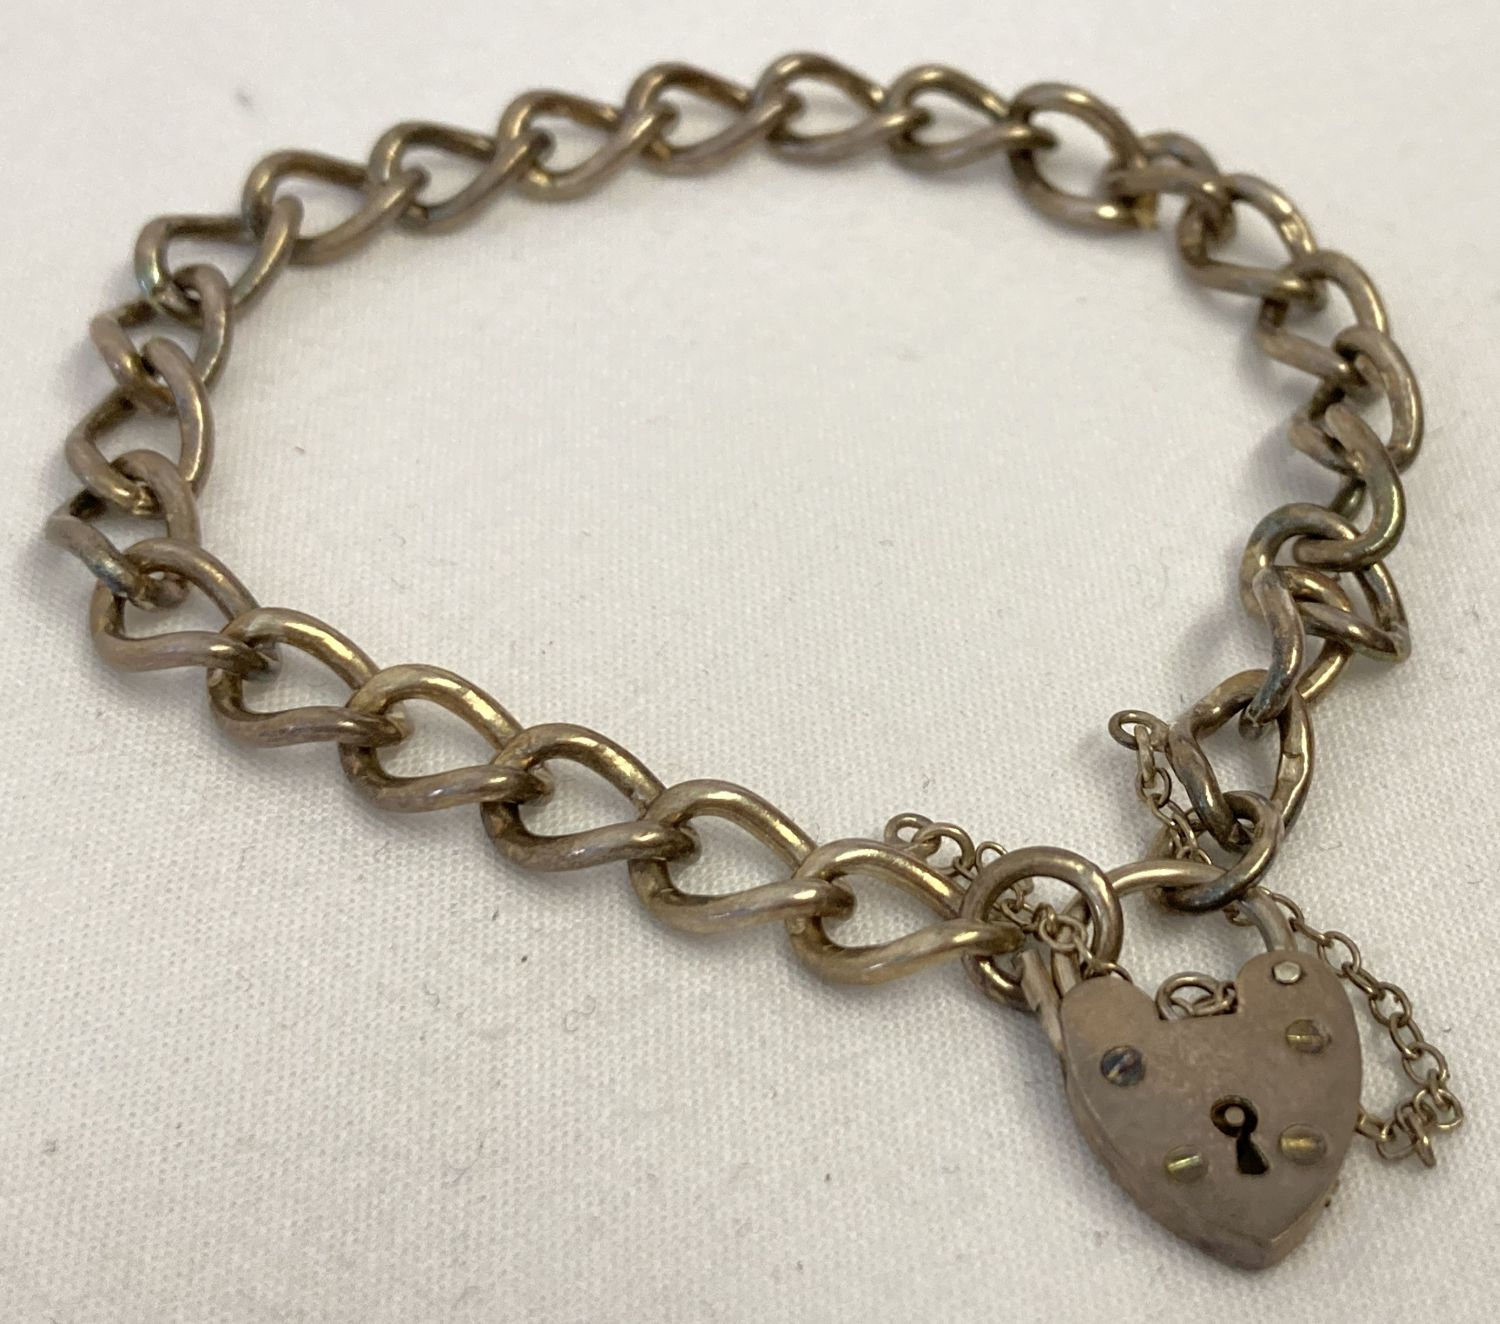 A vintage curb chain charm bracelet with padlock and safety chain.